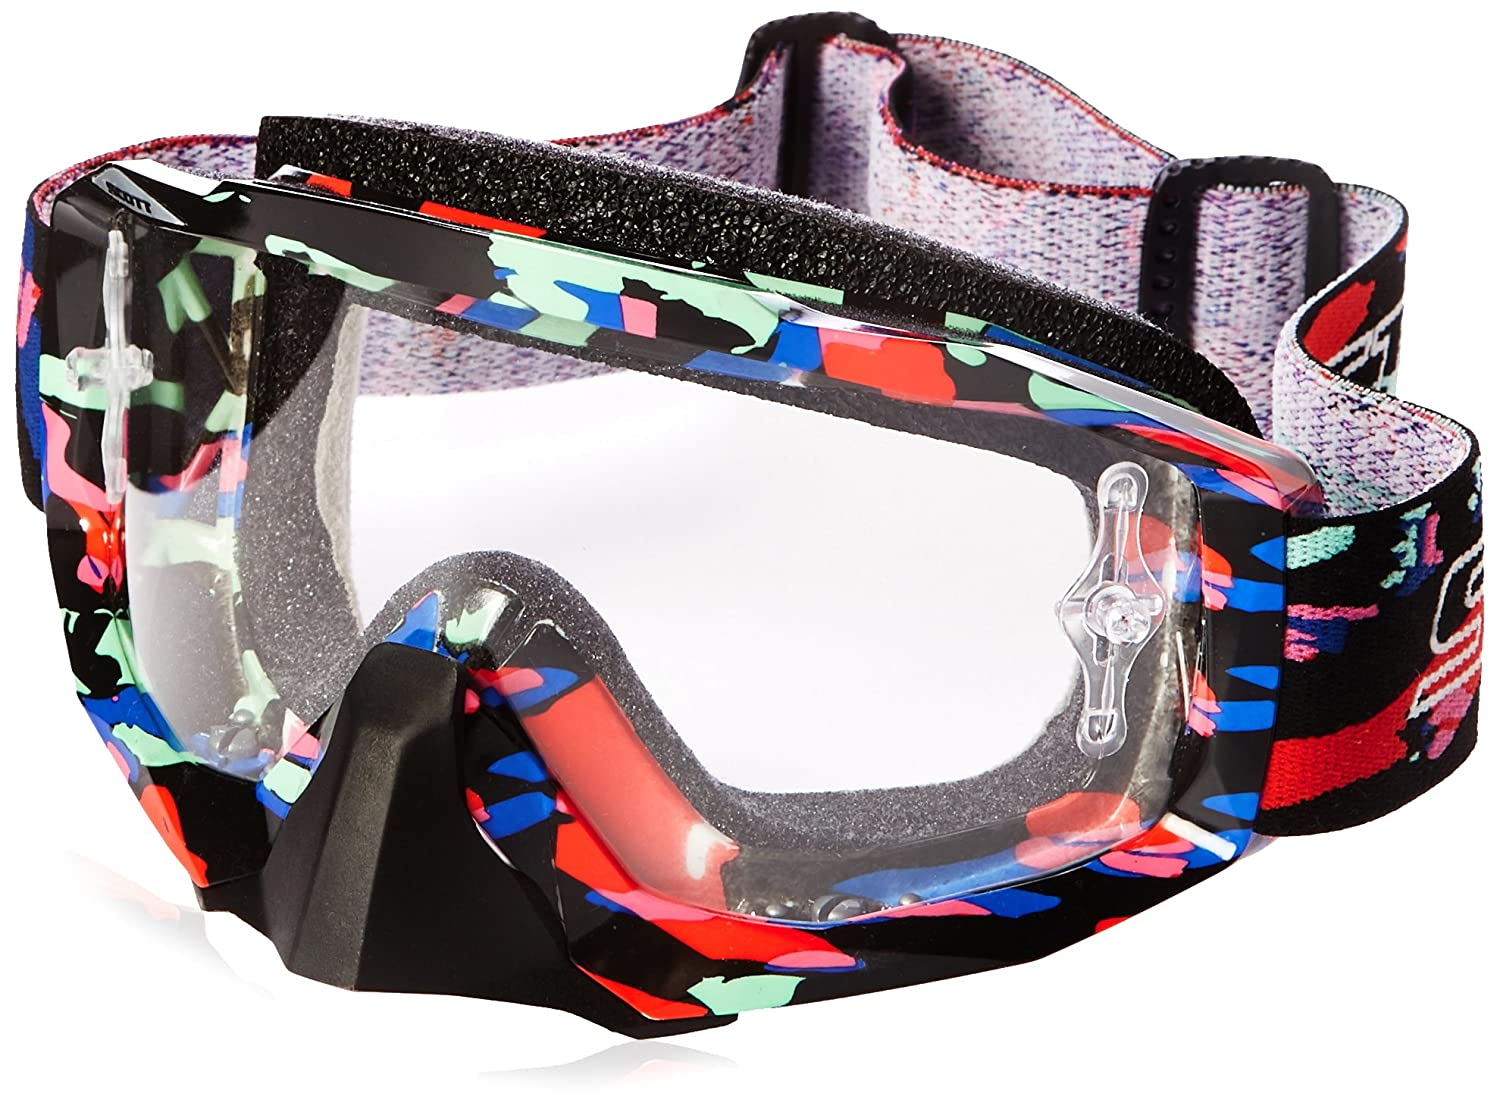 Tangent Red//Yellow, One Size Scott Sports Hustle Goggles with Works Clear AFC Lens 217782-3608041